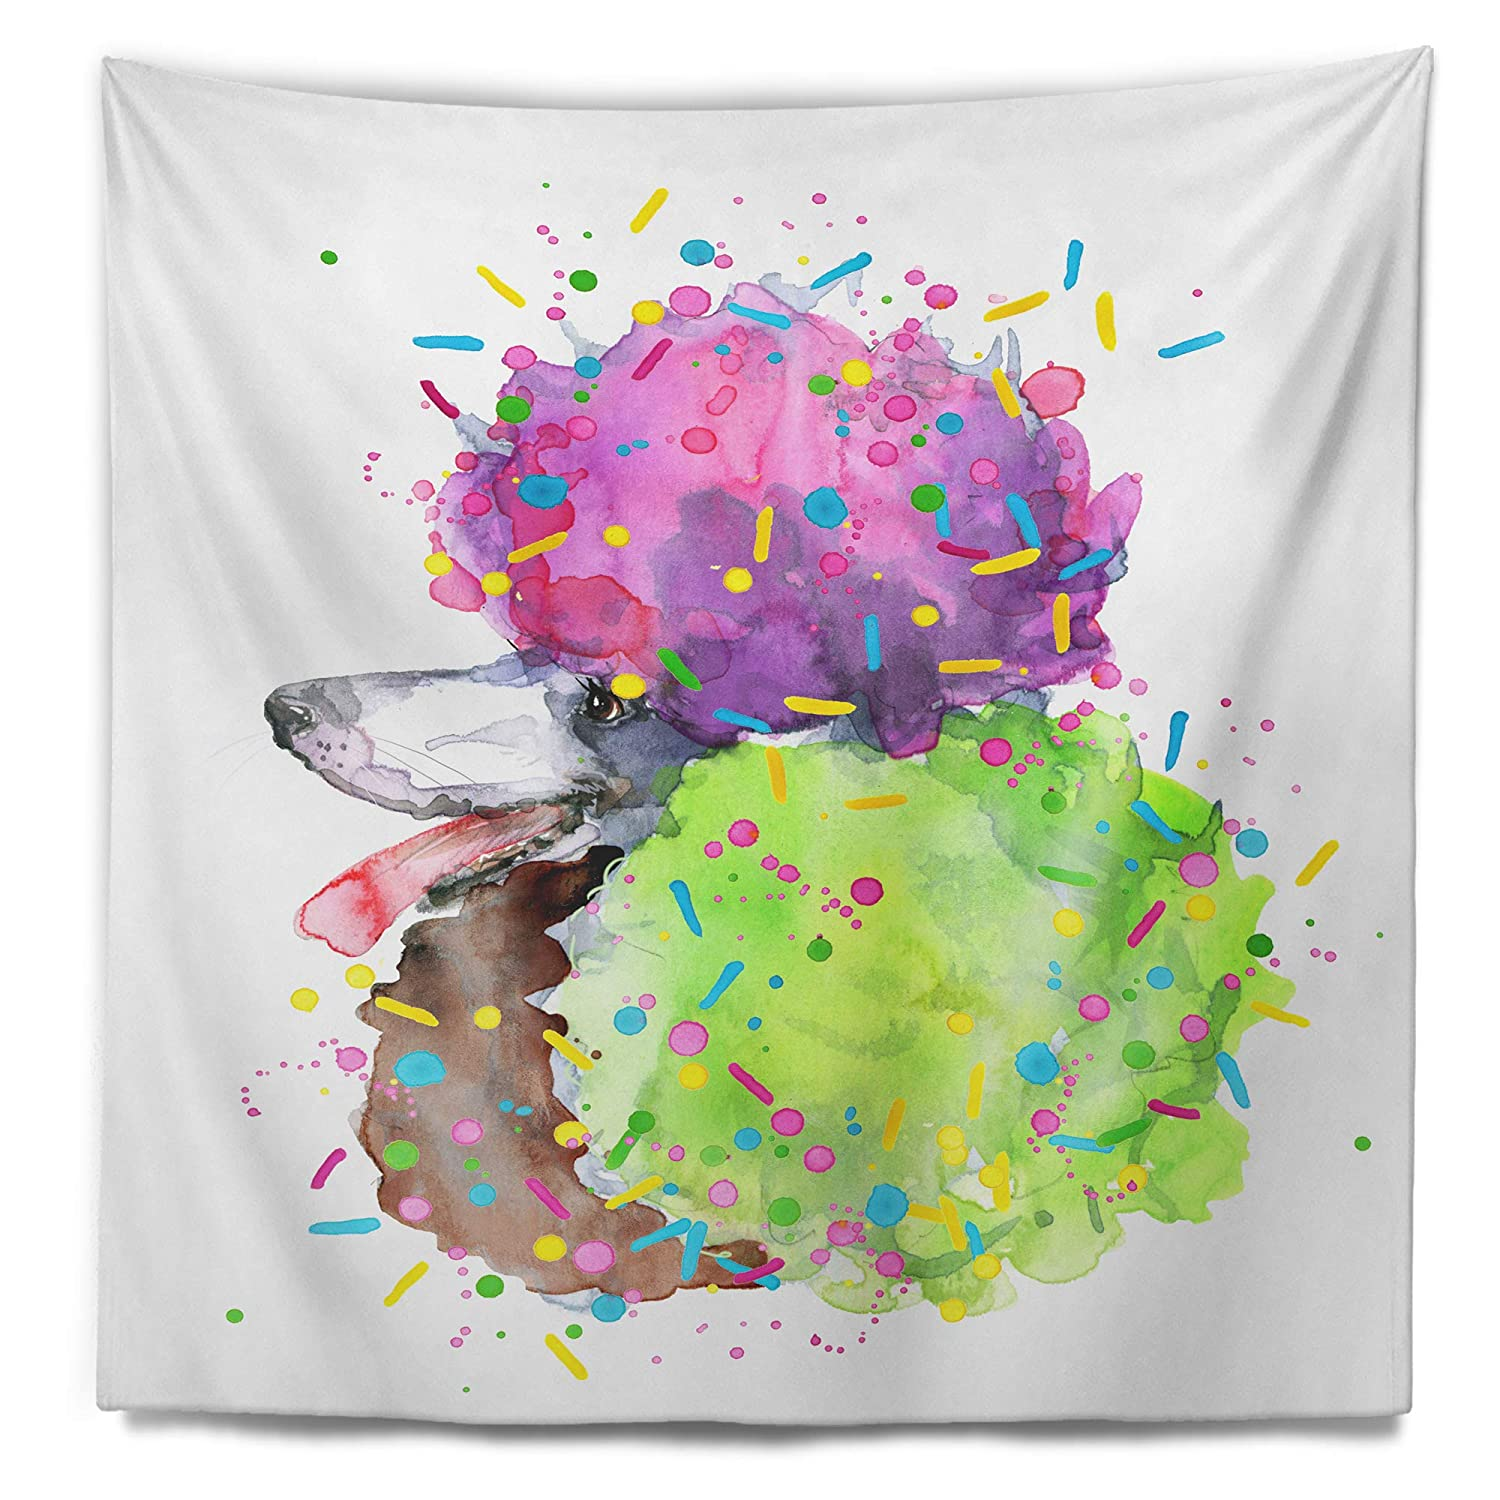 Designart TAP13241-68-80  Cute Brown Dog with Color Spheres Contemporary Animal Blanket D/écor Art for Home and Office Wall Tapestry XX-Large 68 in x 80 in in